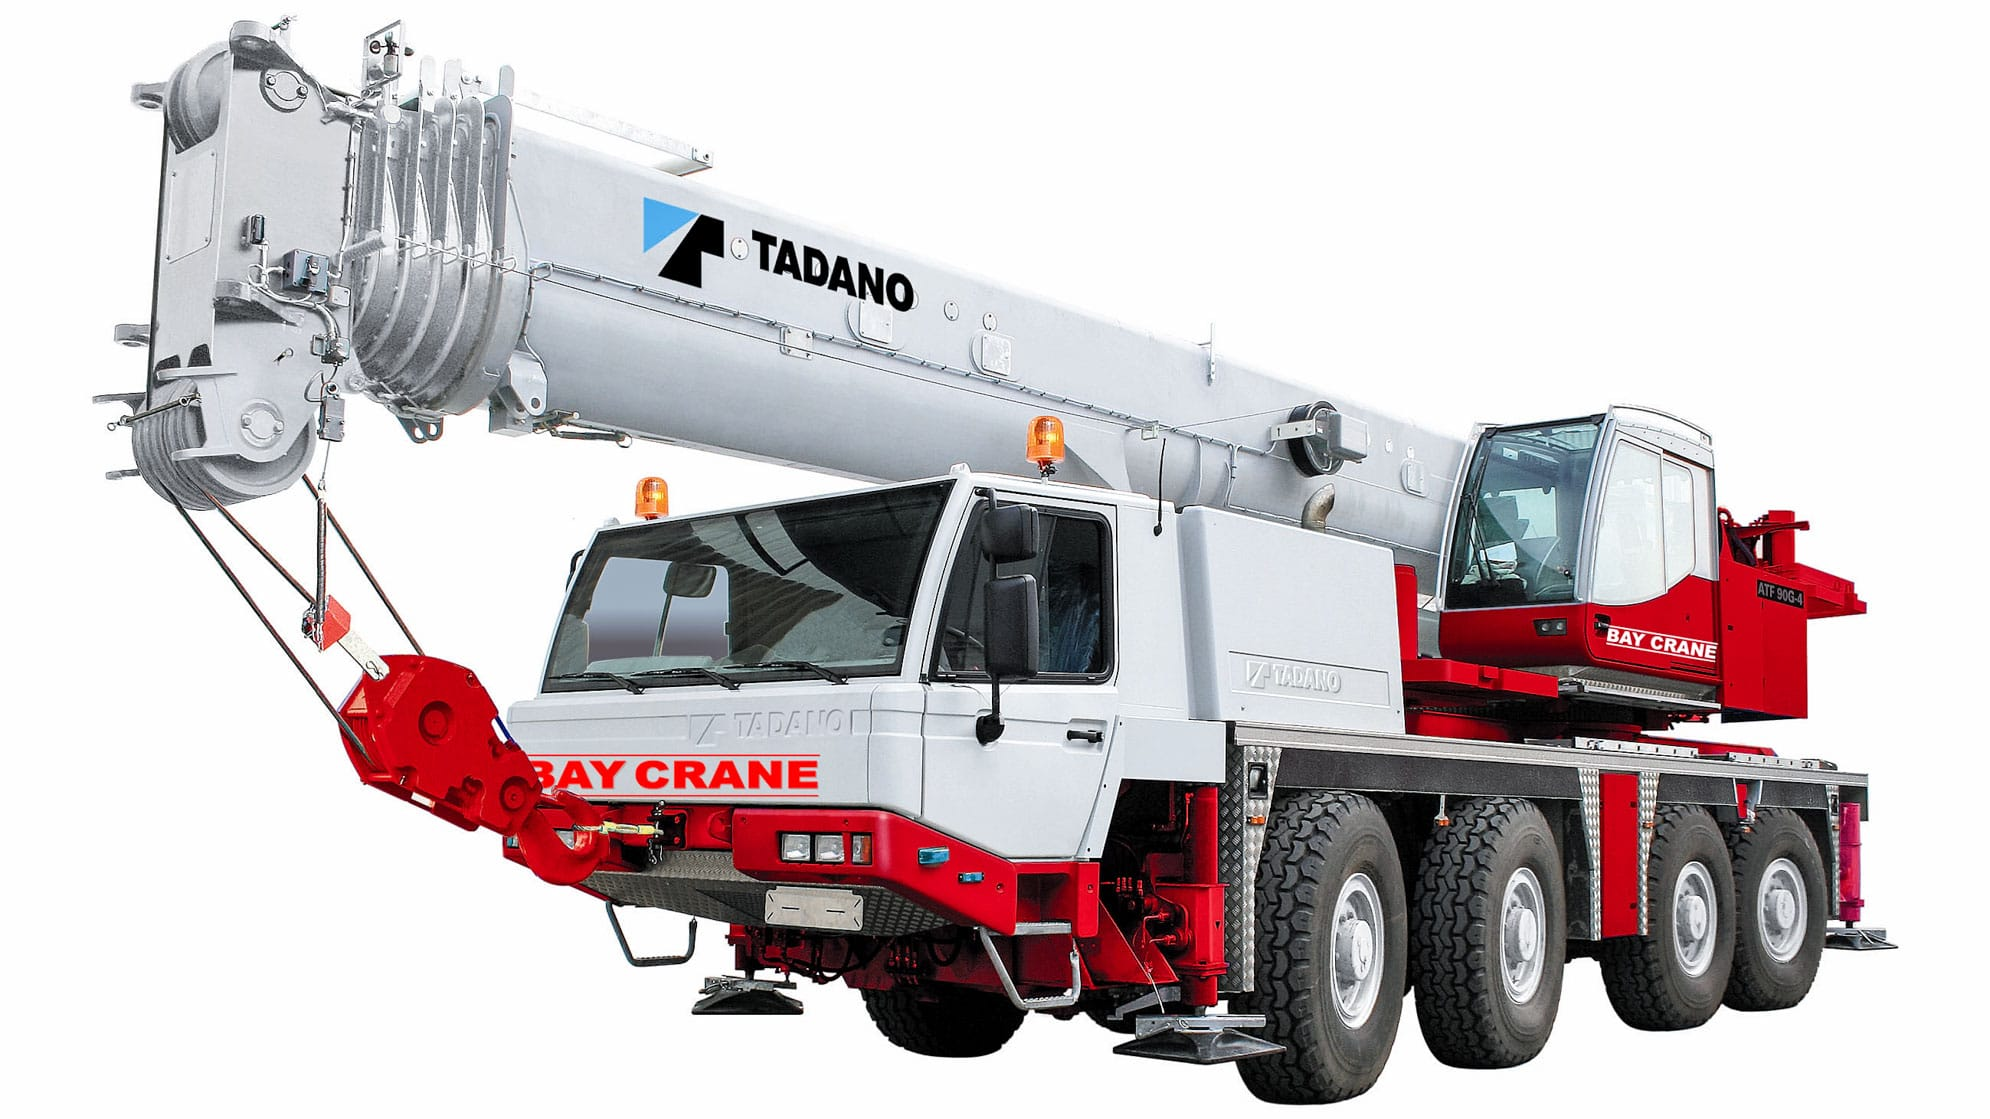 ATF 650 XL all terrain crane with a hydraulic expandable